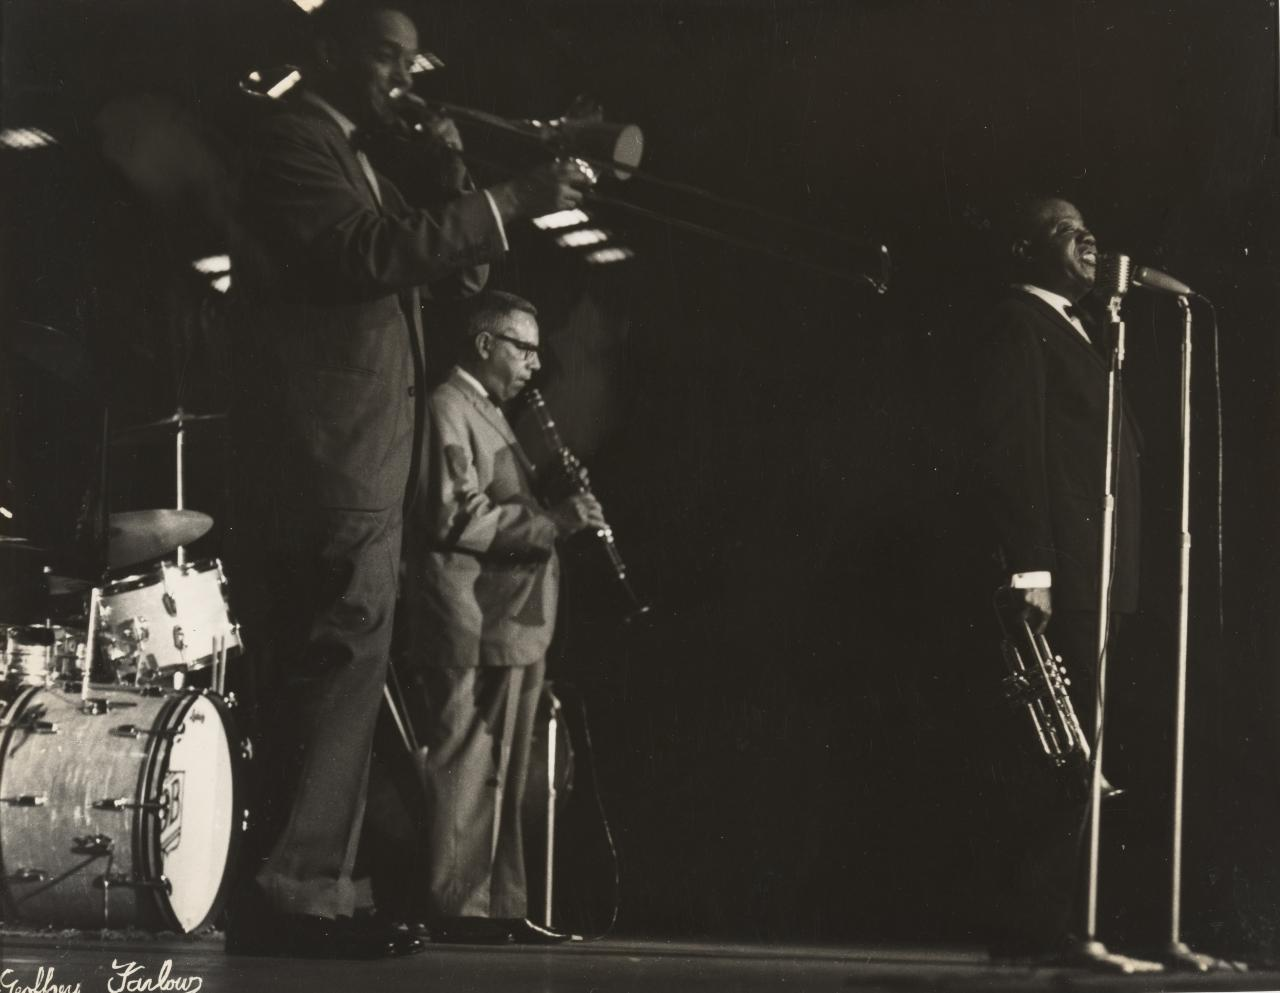 No title (Louis Armstrong concert, Armstrong at microphone)